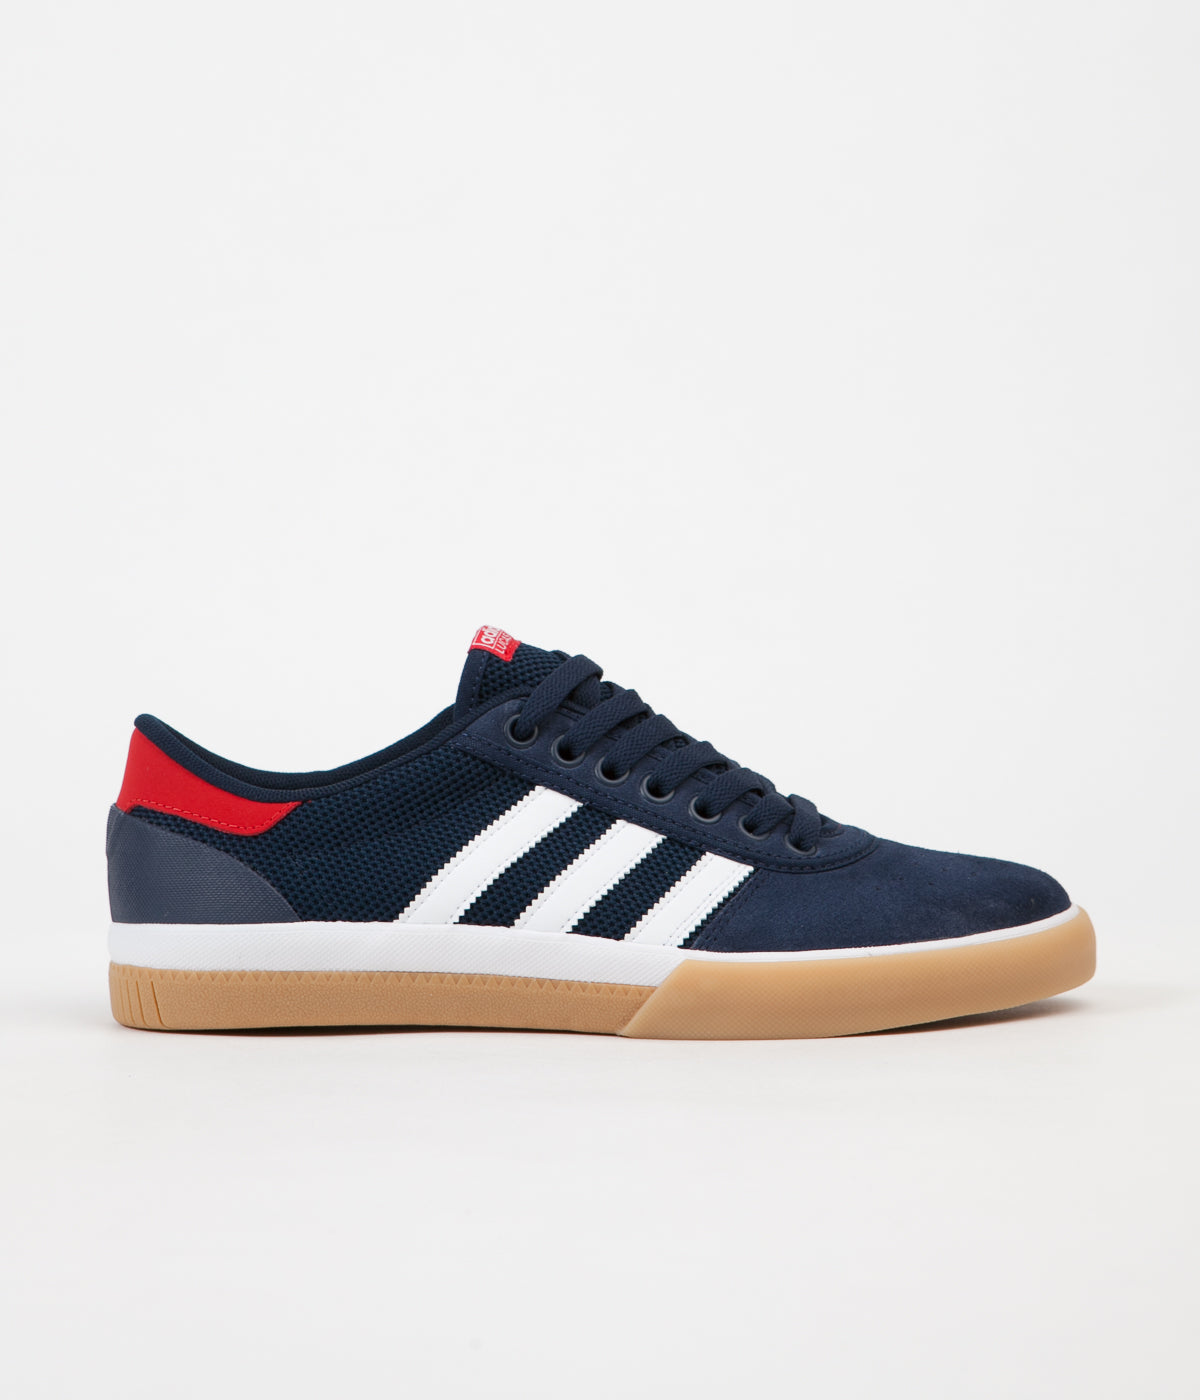 bba7ccd9c52 Adidas Lucas Premiere Shoes - Collegiate Navy   White   Scarlet ...